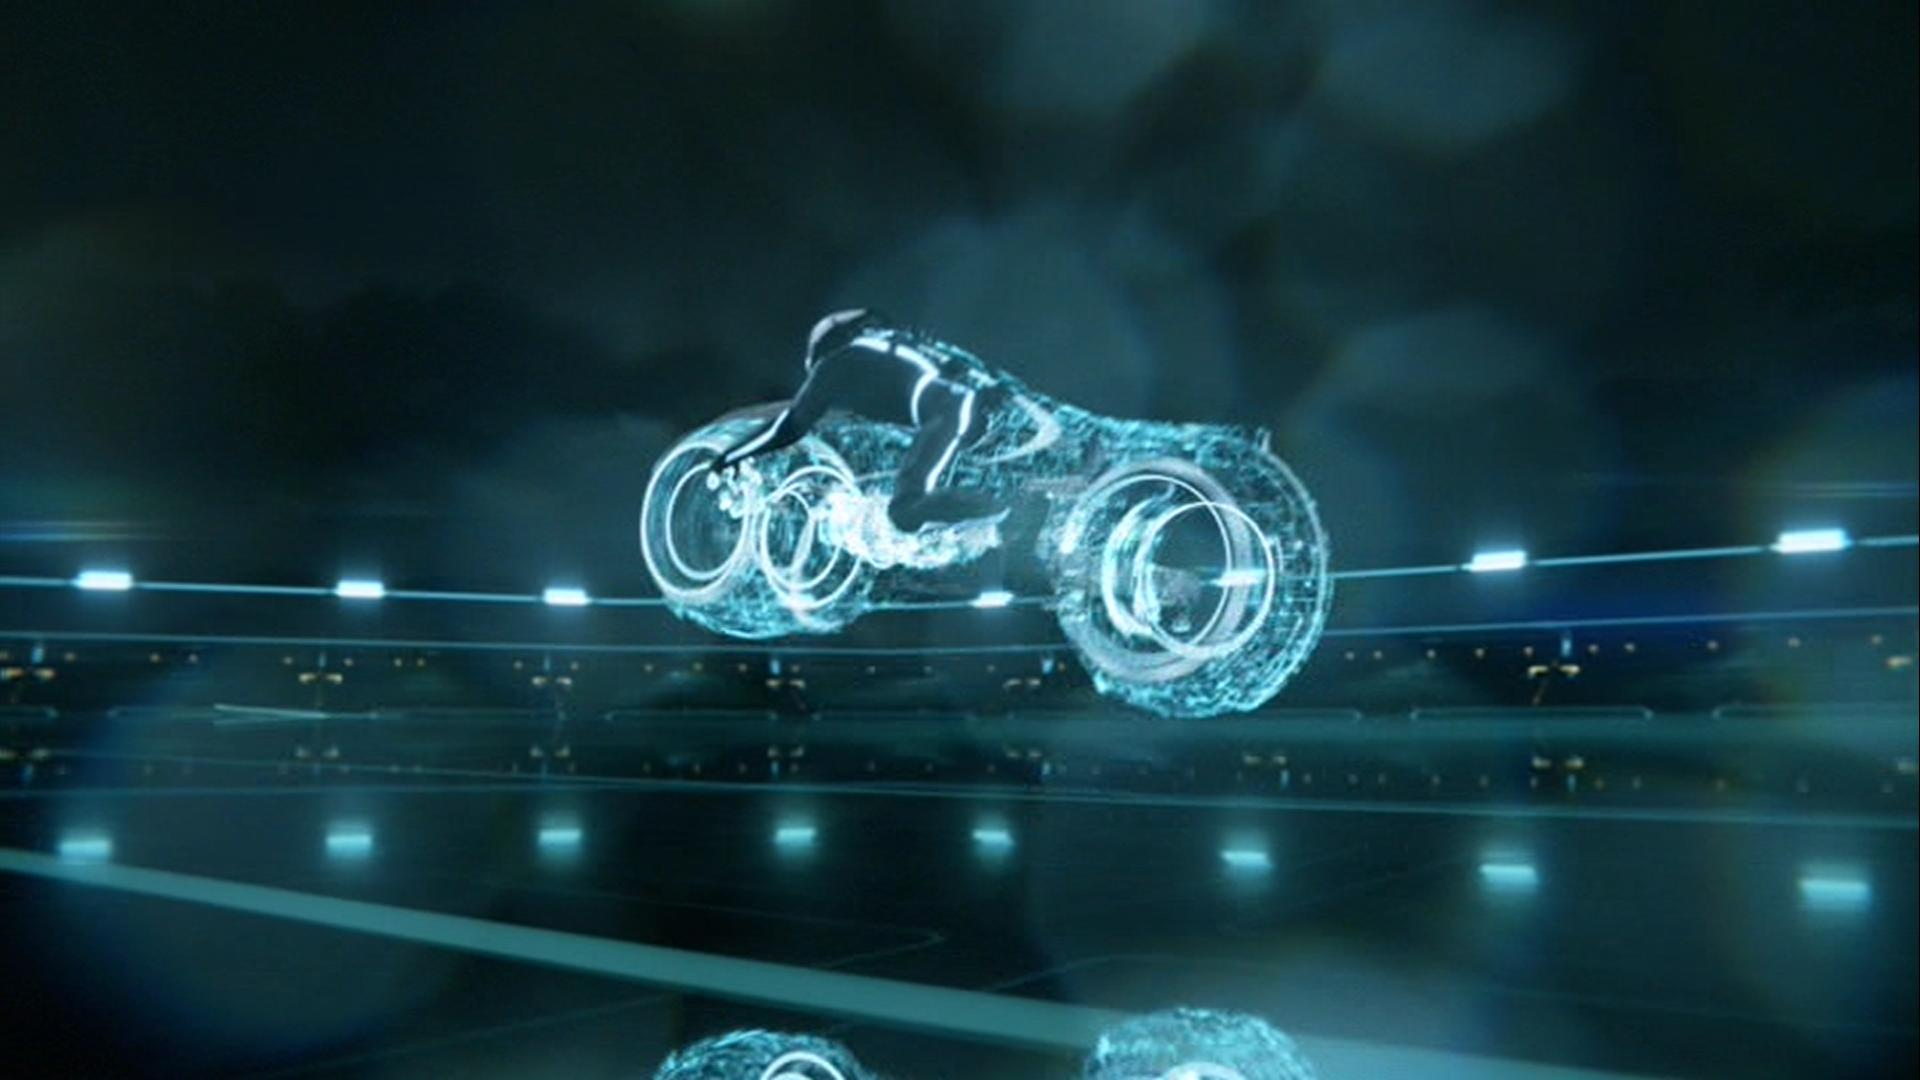 Tron Legacy Backgrounds - Wallpaper Cave